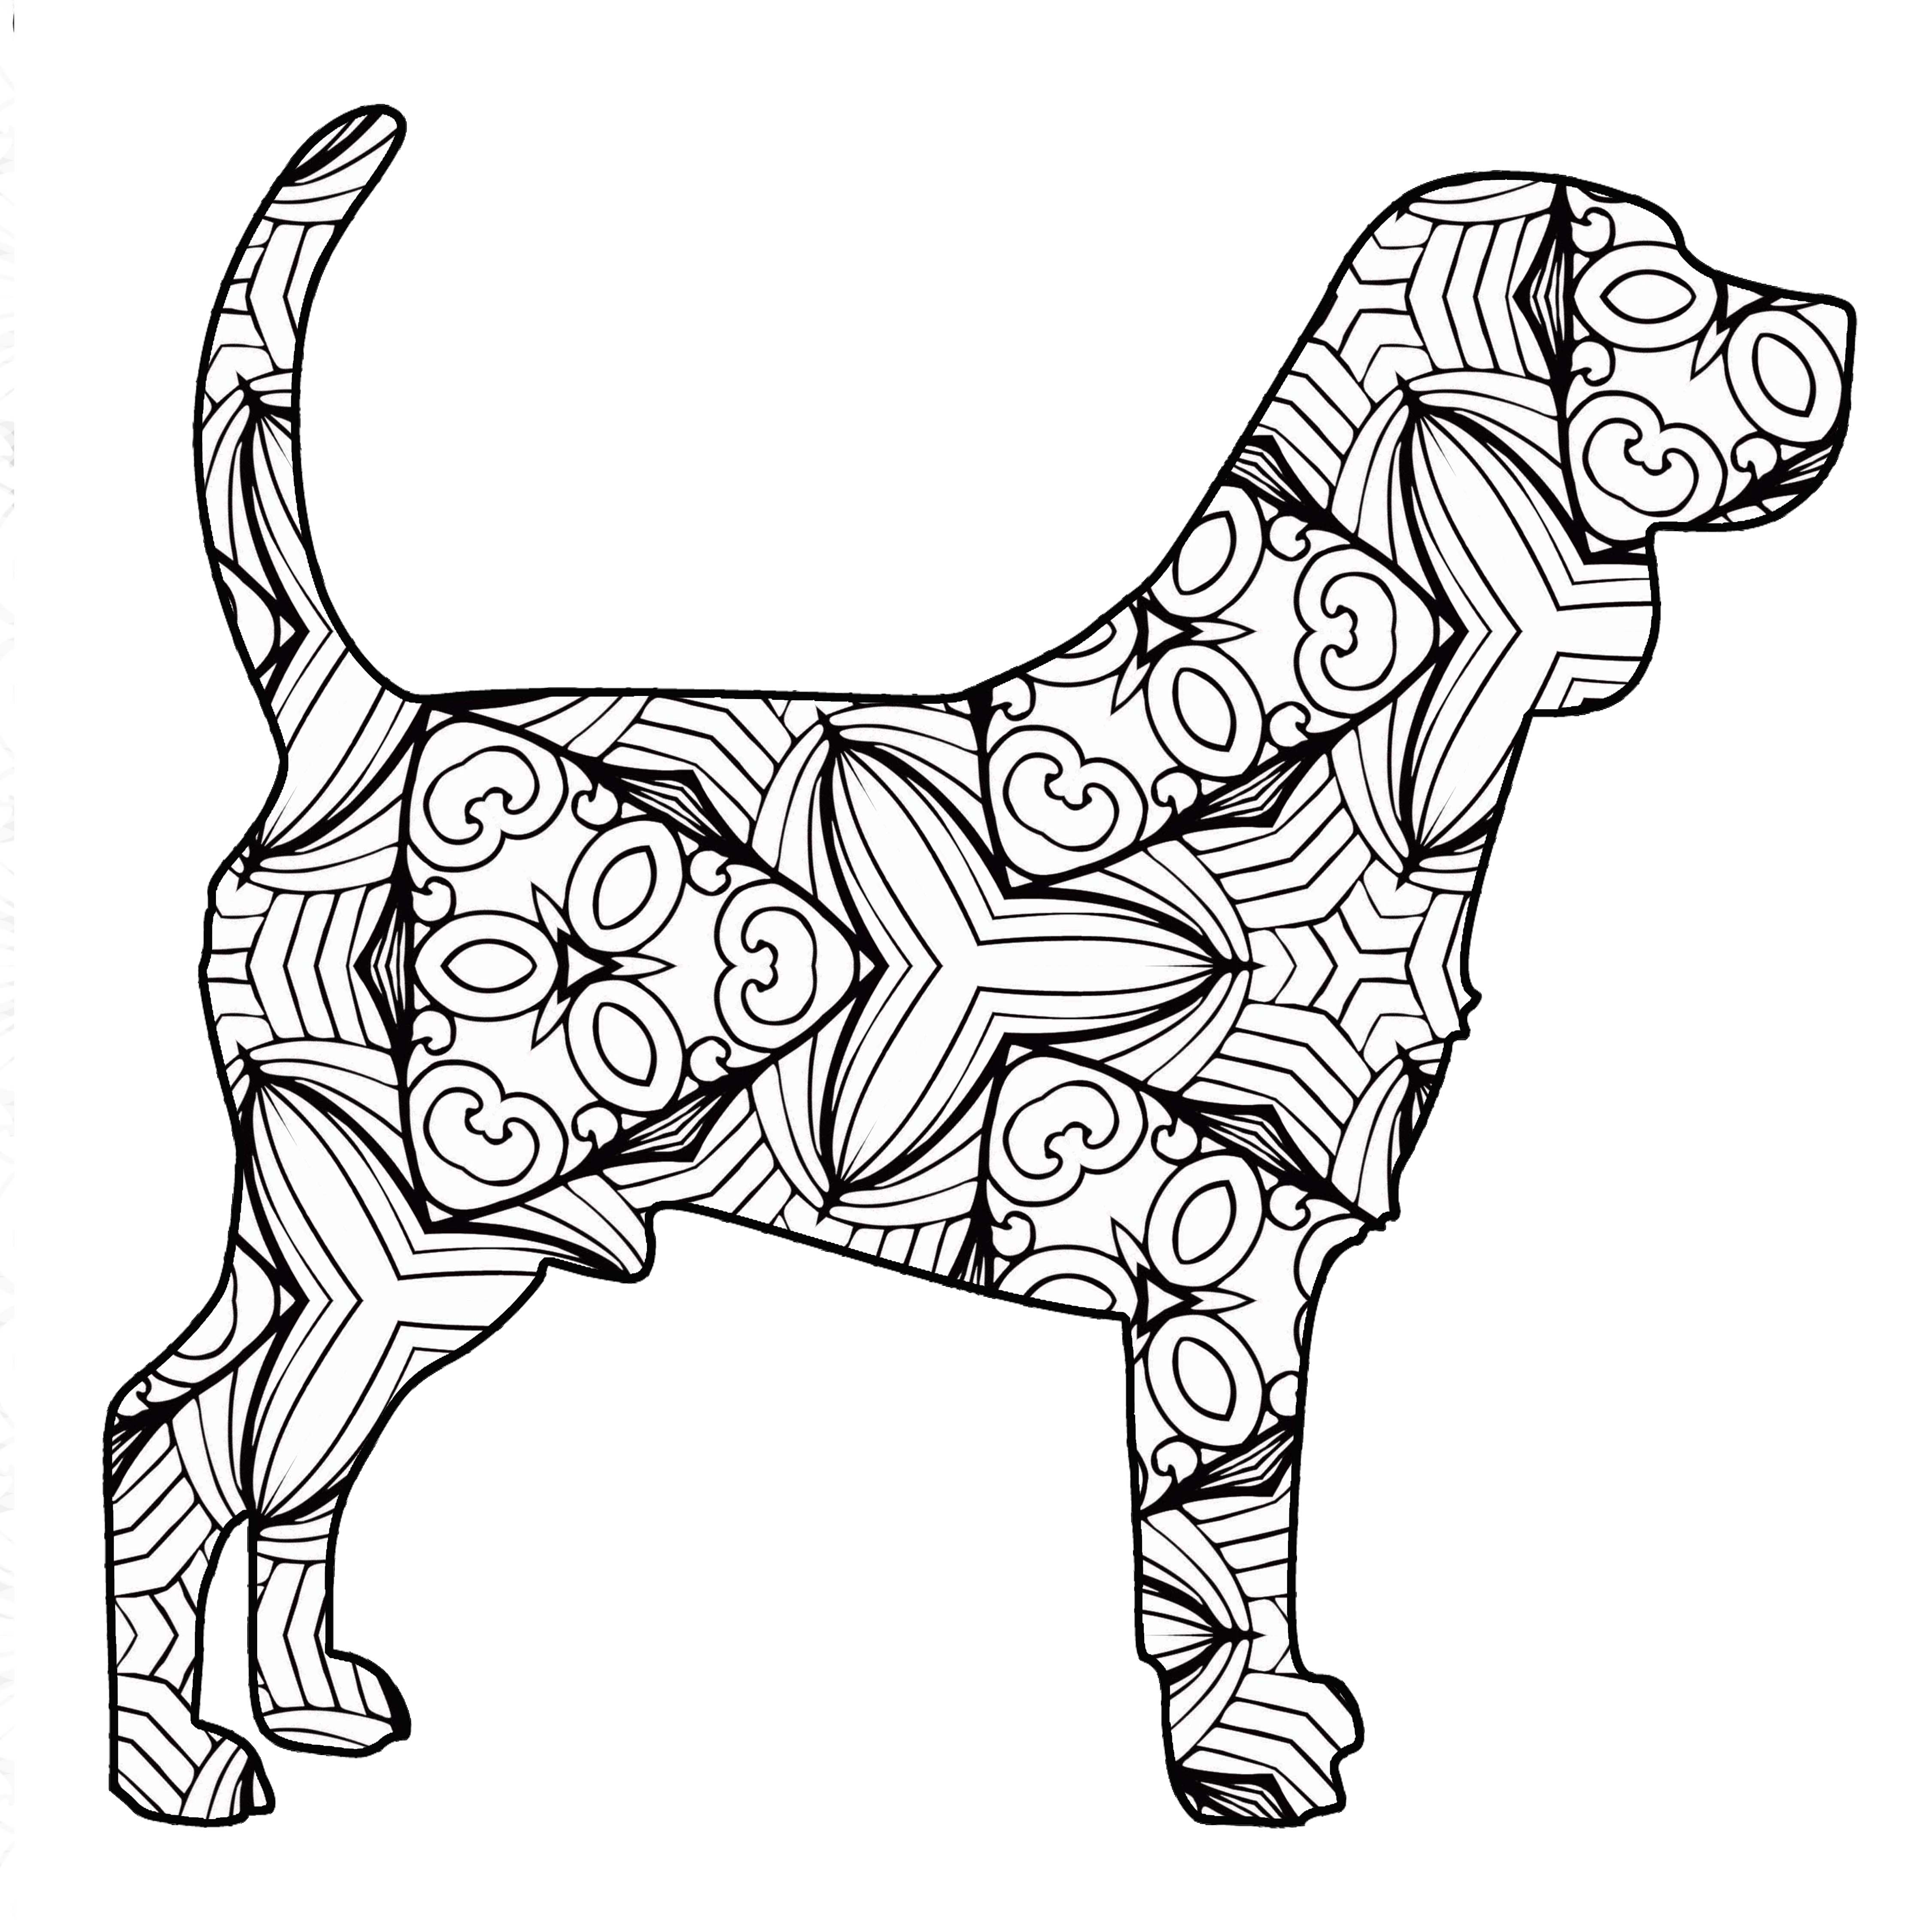 30 Free Printable Geometric Animal Coloring Pages